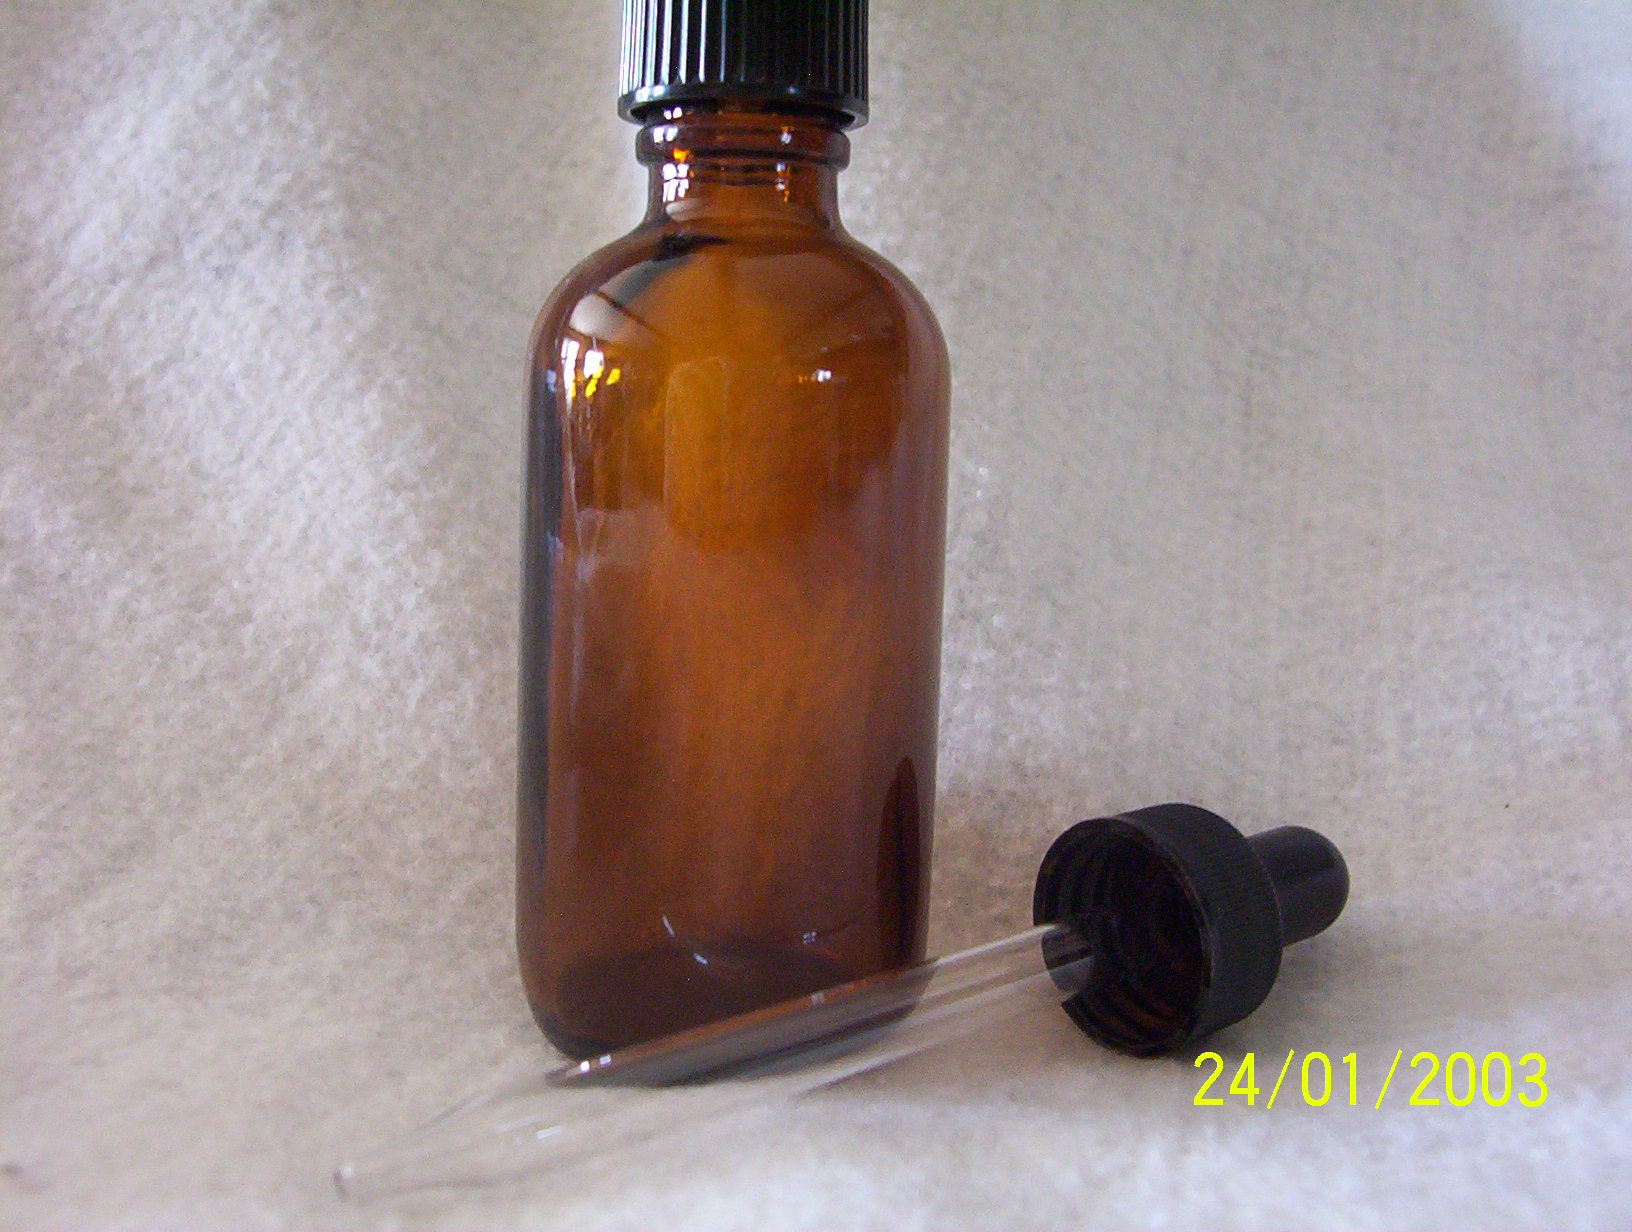 2 oz. Amber glass bottle with black cap